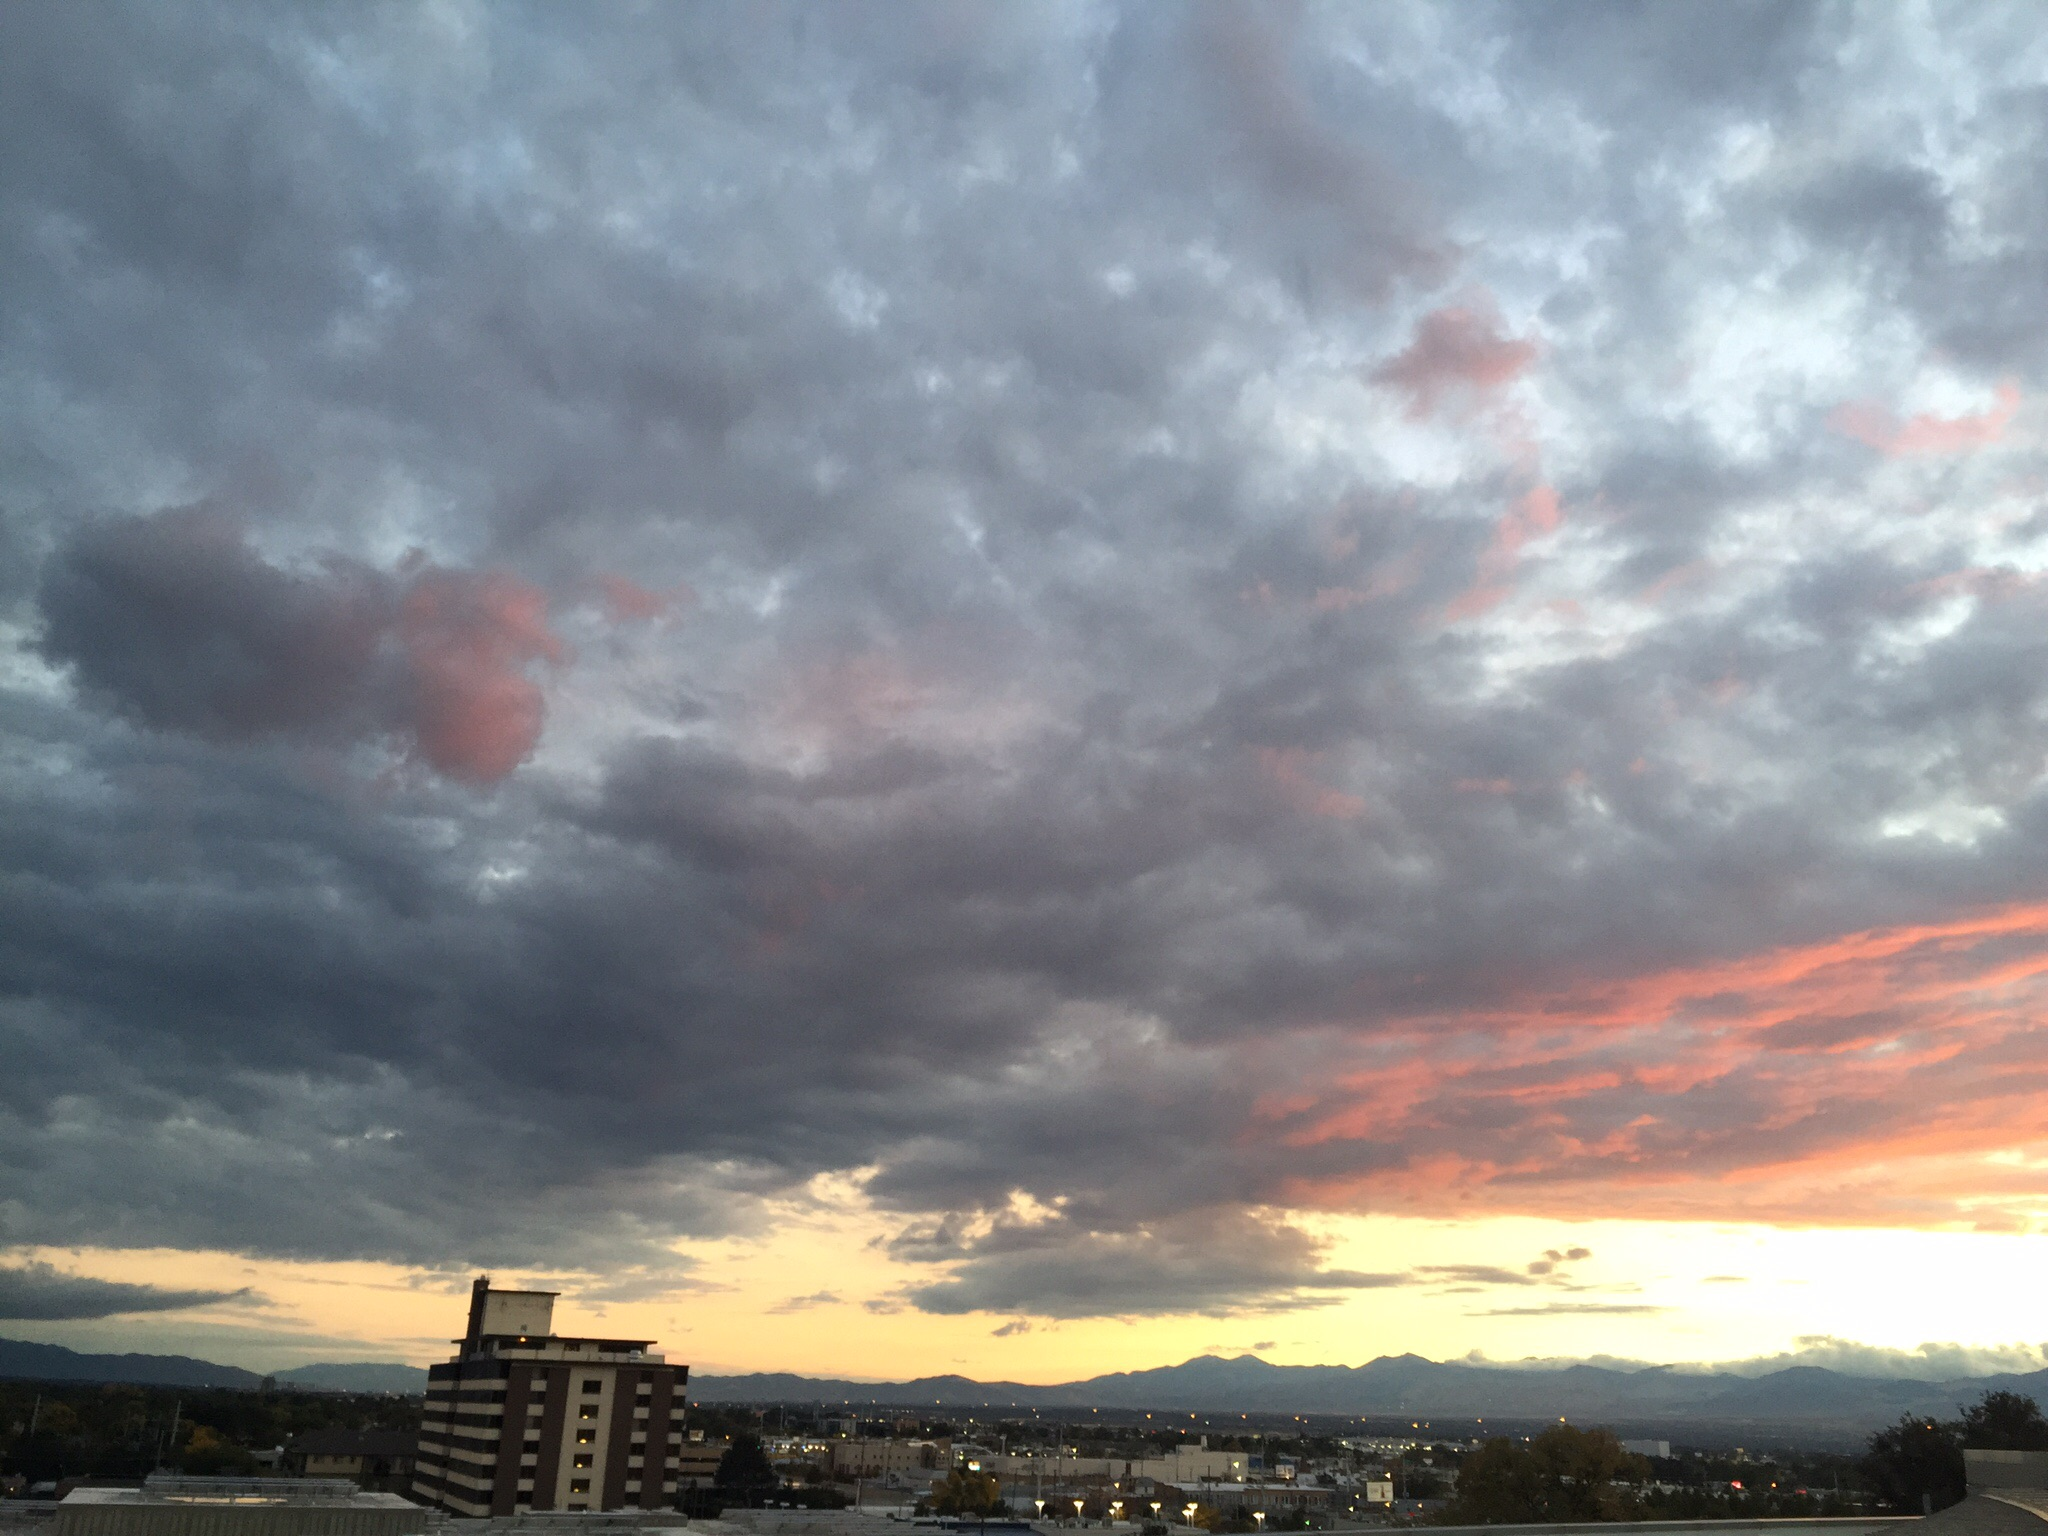 Sunset from the roof of the Salt Lake City Public Library, Tuesday October 20